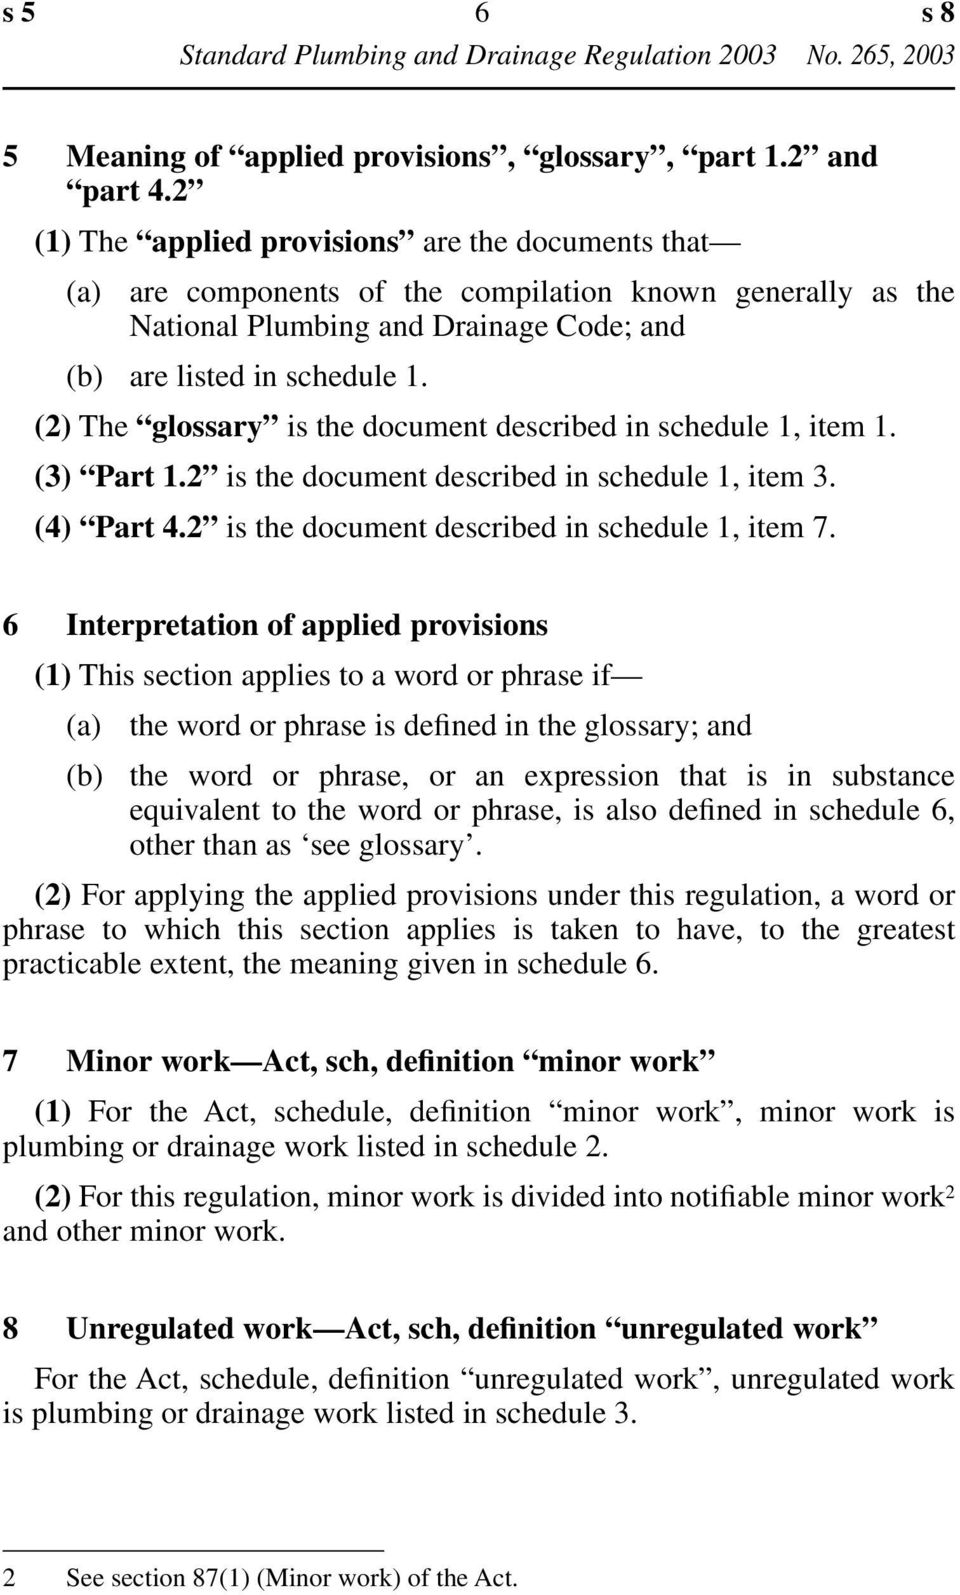 (2) The glossary is the document described in schedule 1, item 1. (3) Part 1.2 is the document described in schedule 1, item 3. (4) Part 4.2 is the document described in schedule 1, item 7.